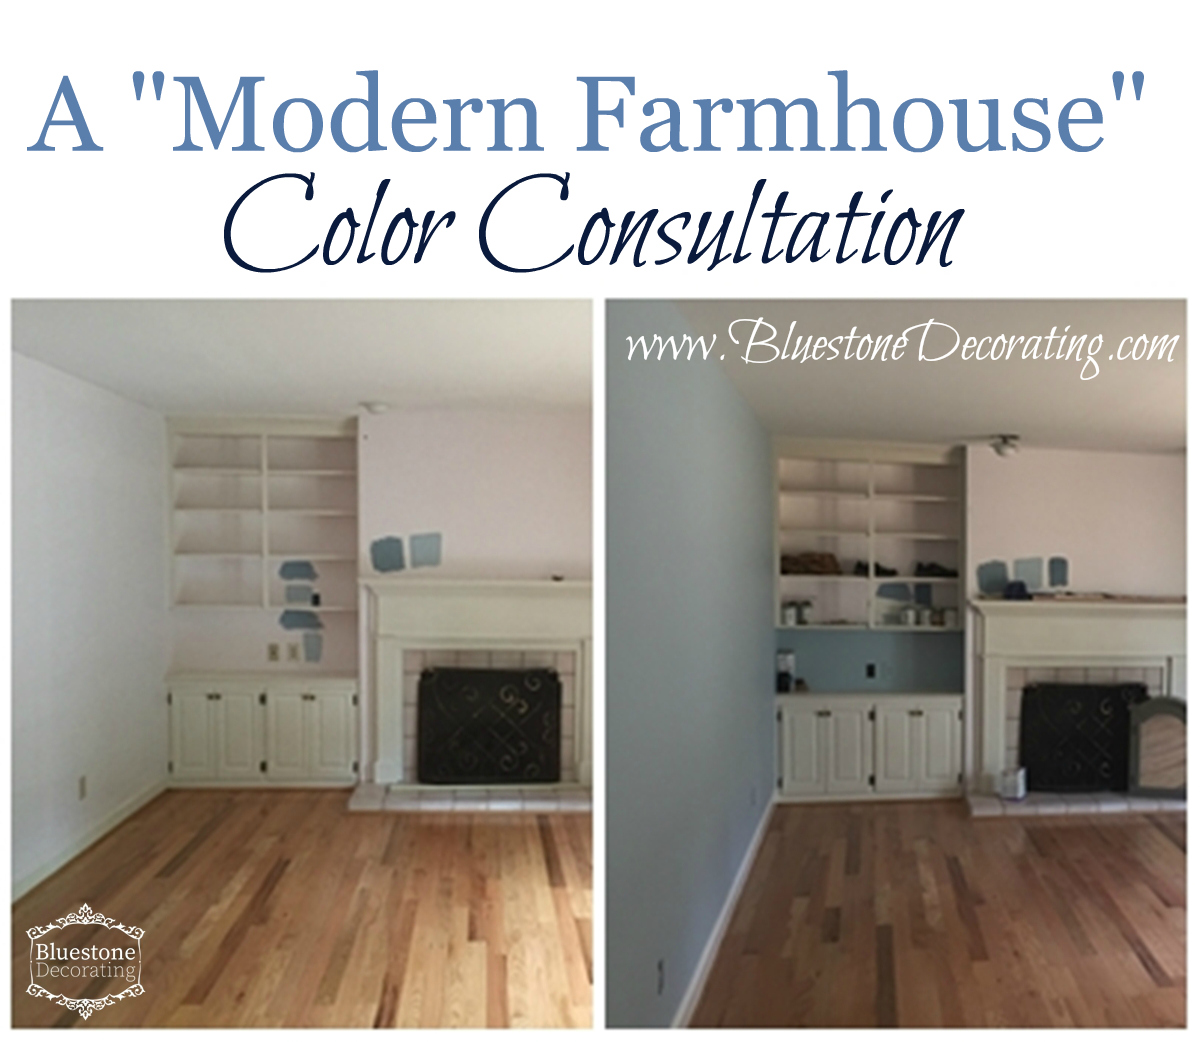 A Modern Farmhouse Color Consultation Helps Client Find